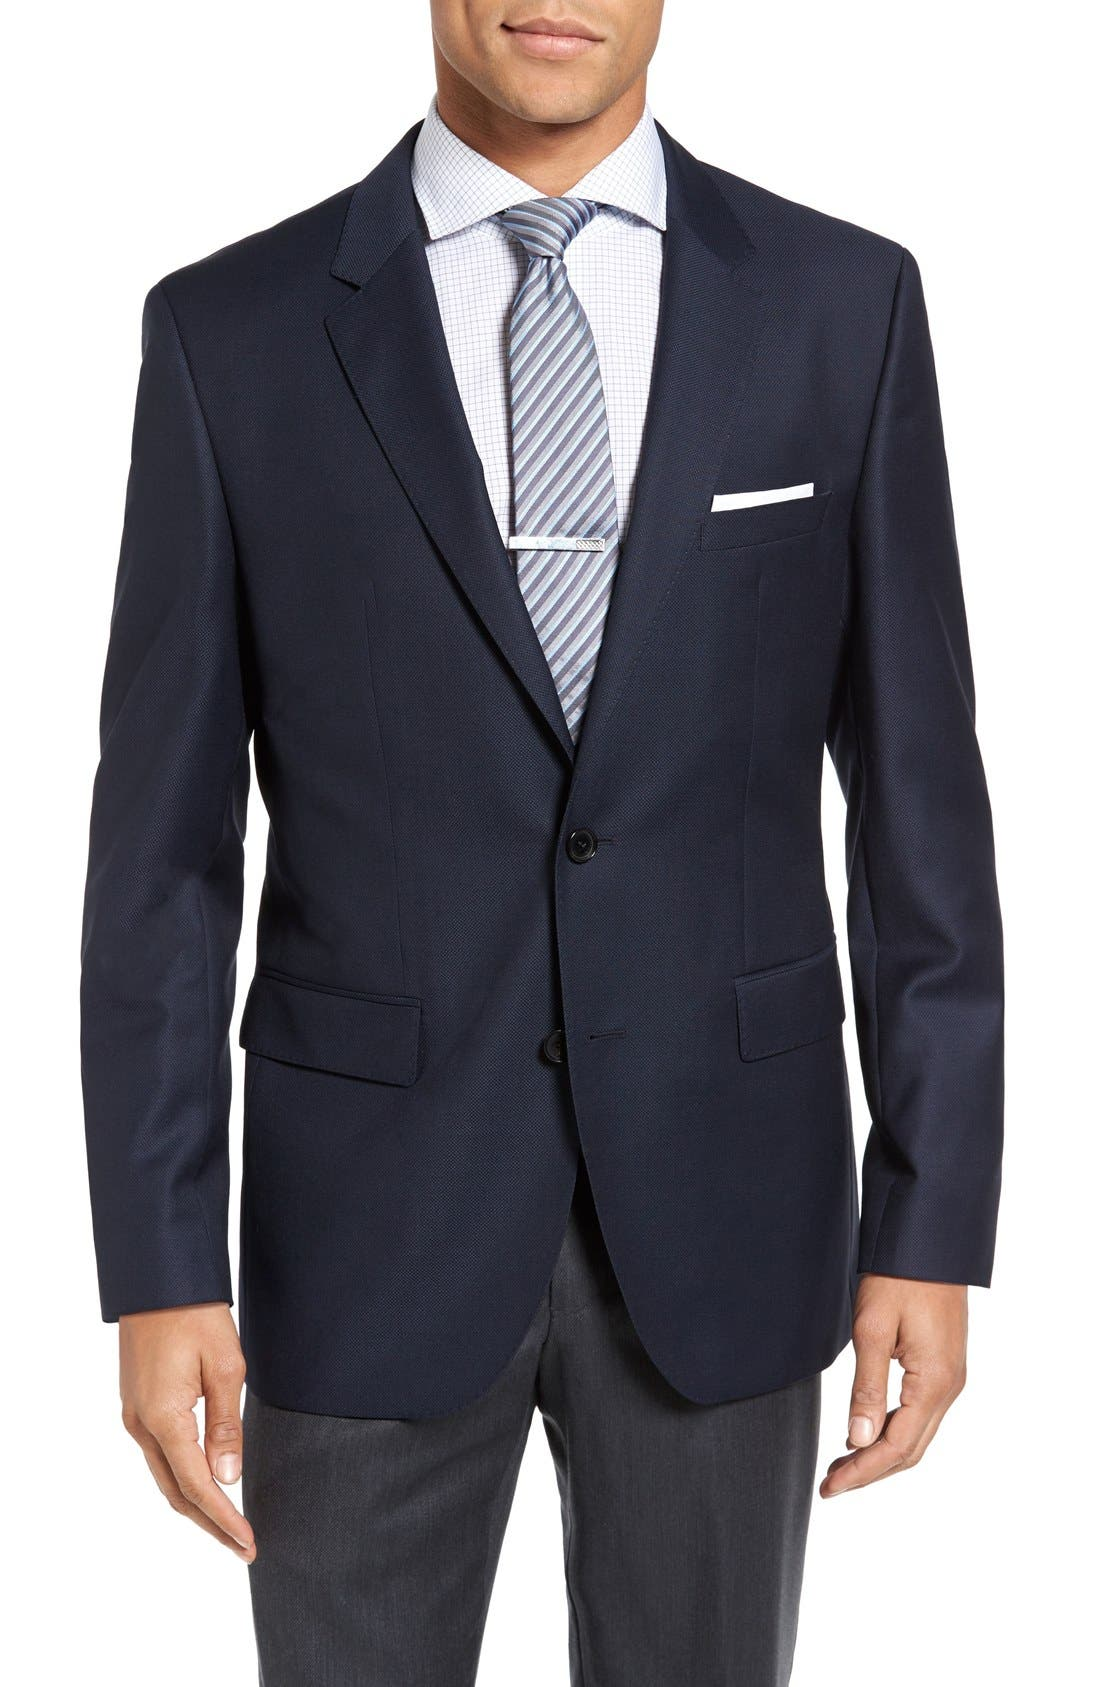 James Classic Fit Wool Blazer,                         Main,                         color, Navy